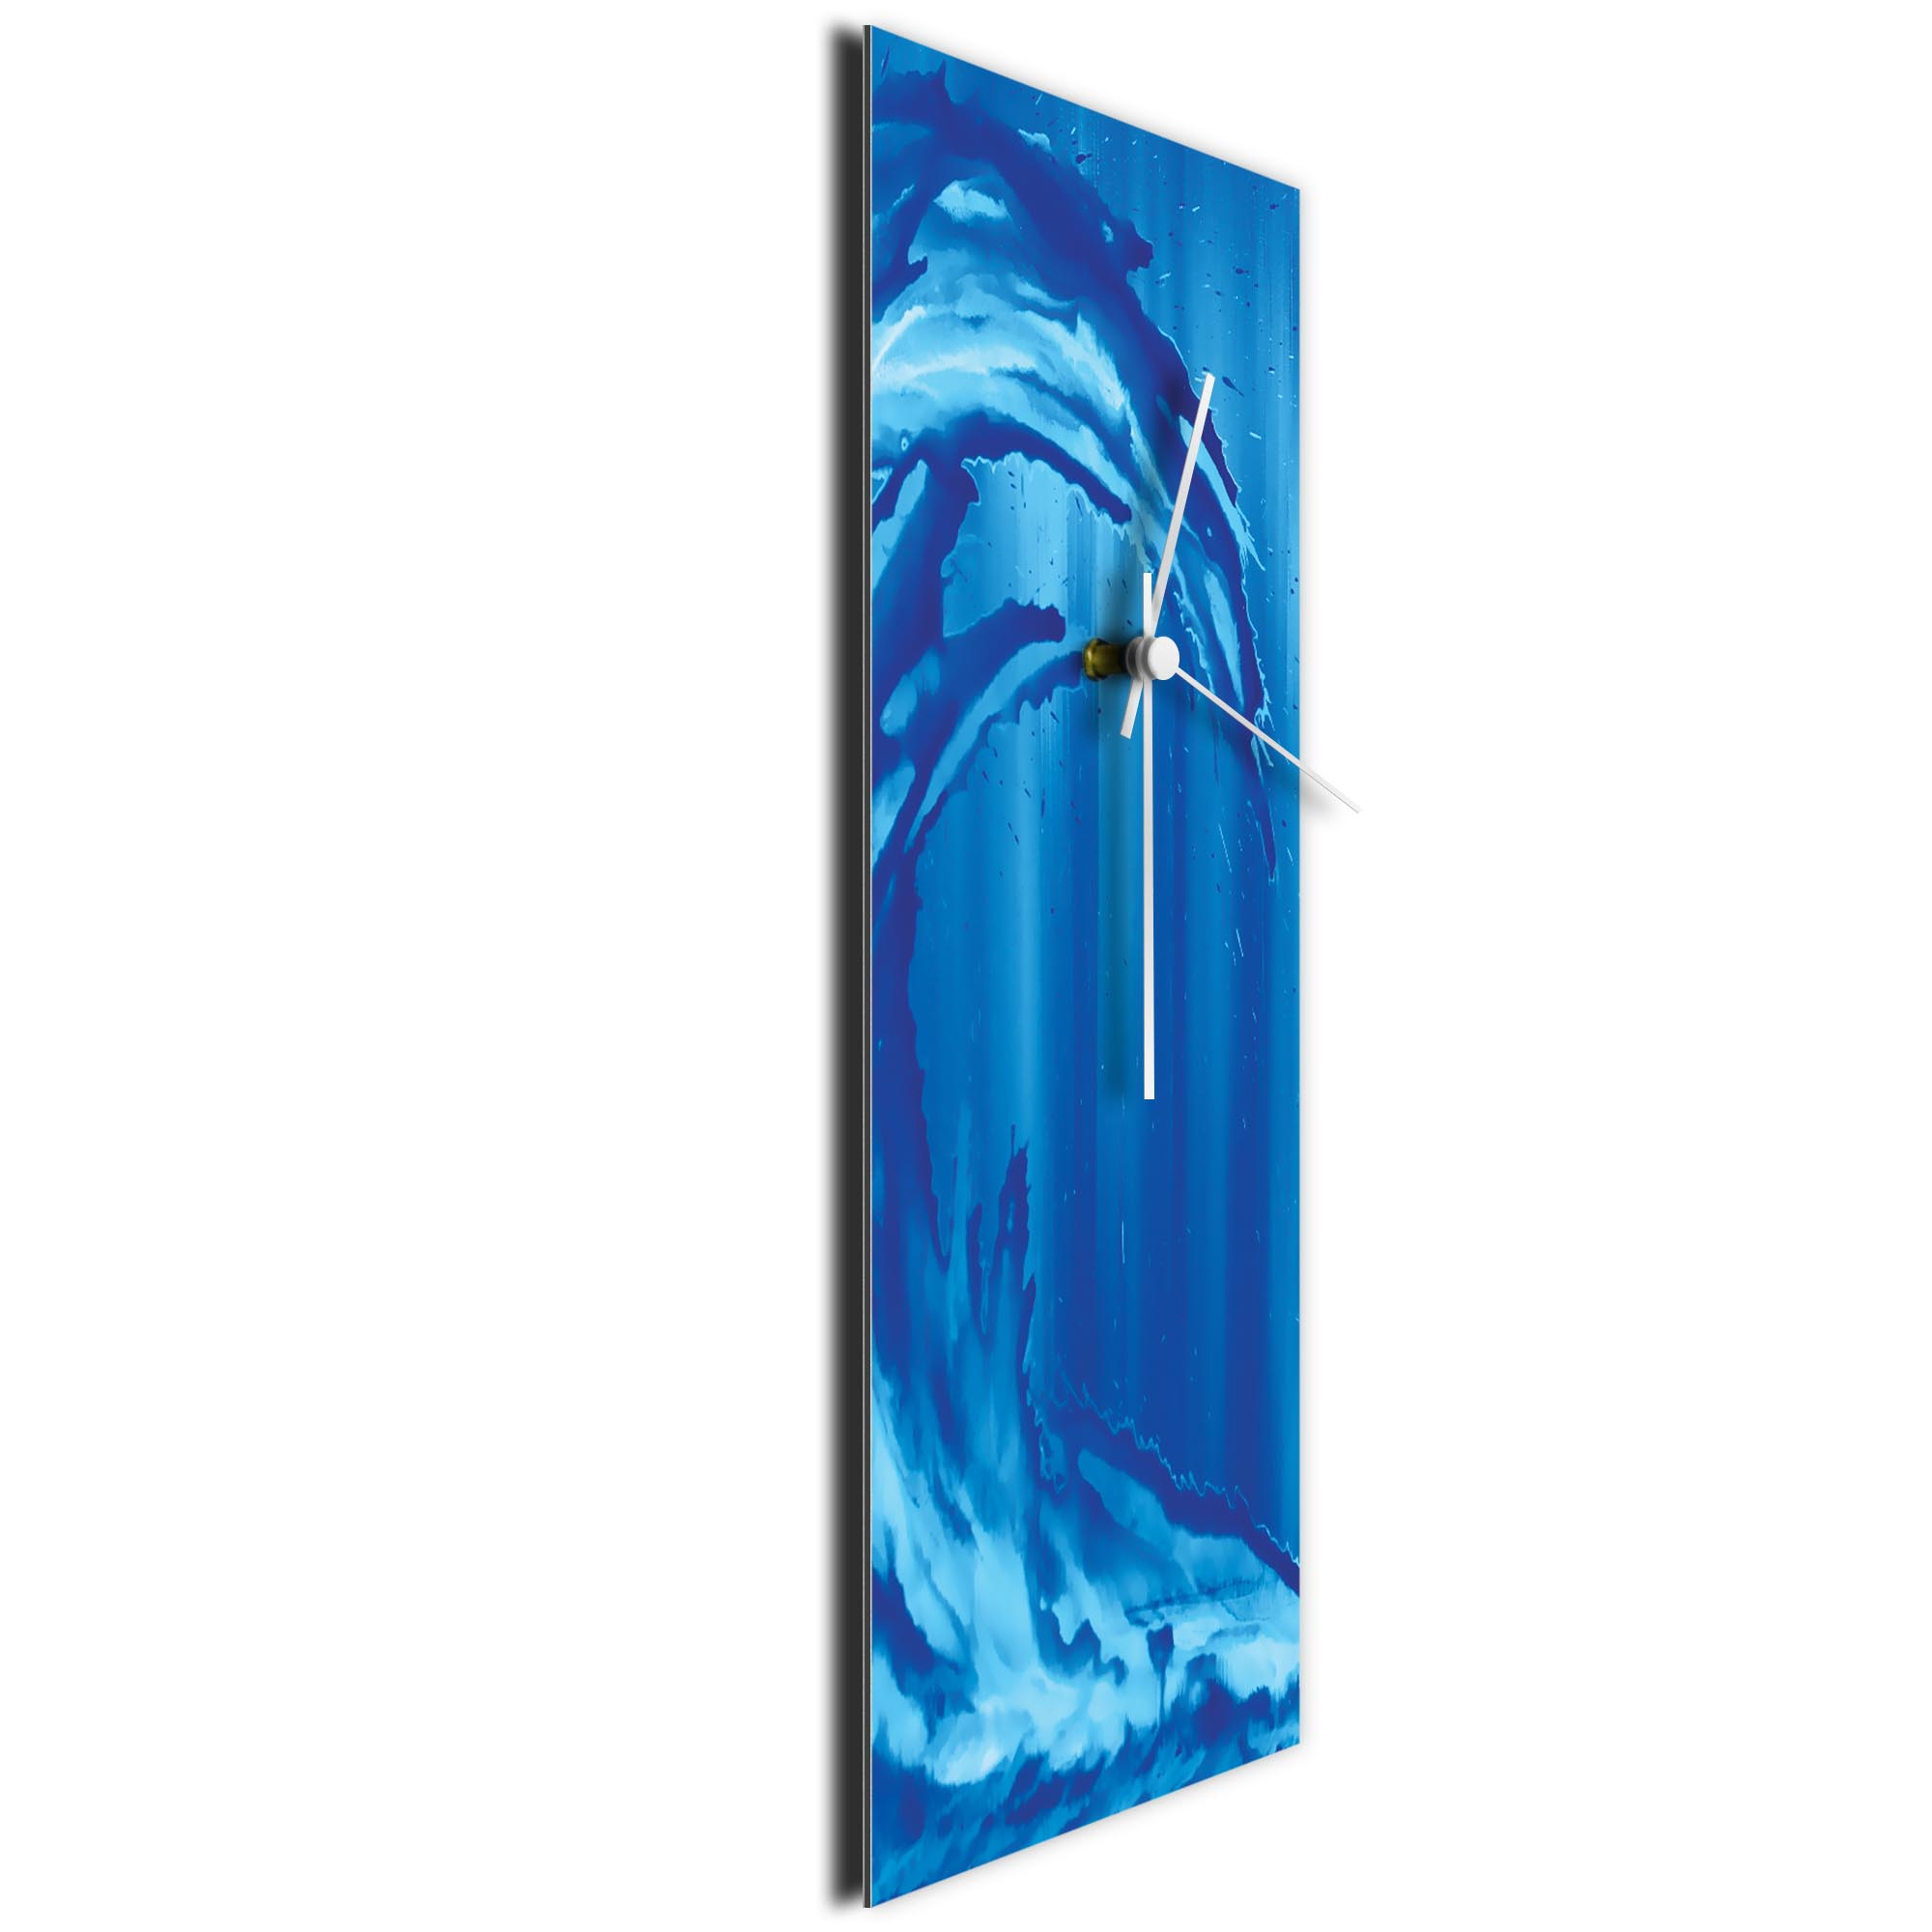 Blue Wave v1 Clock by Mendo Vasilevski - Urban Abstract Home Decor - Image 3